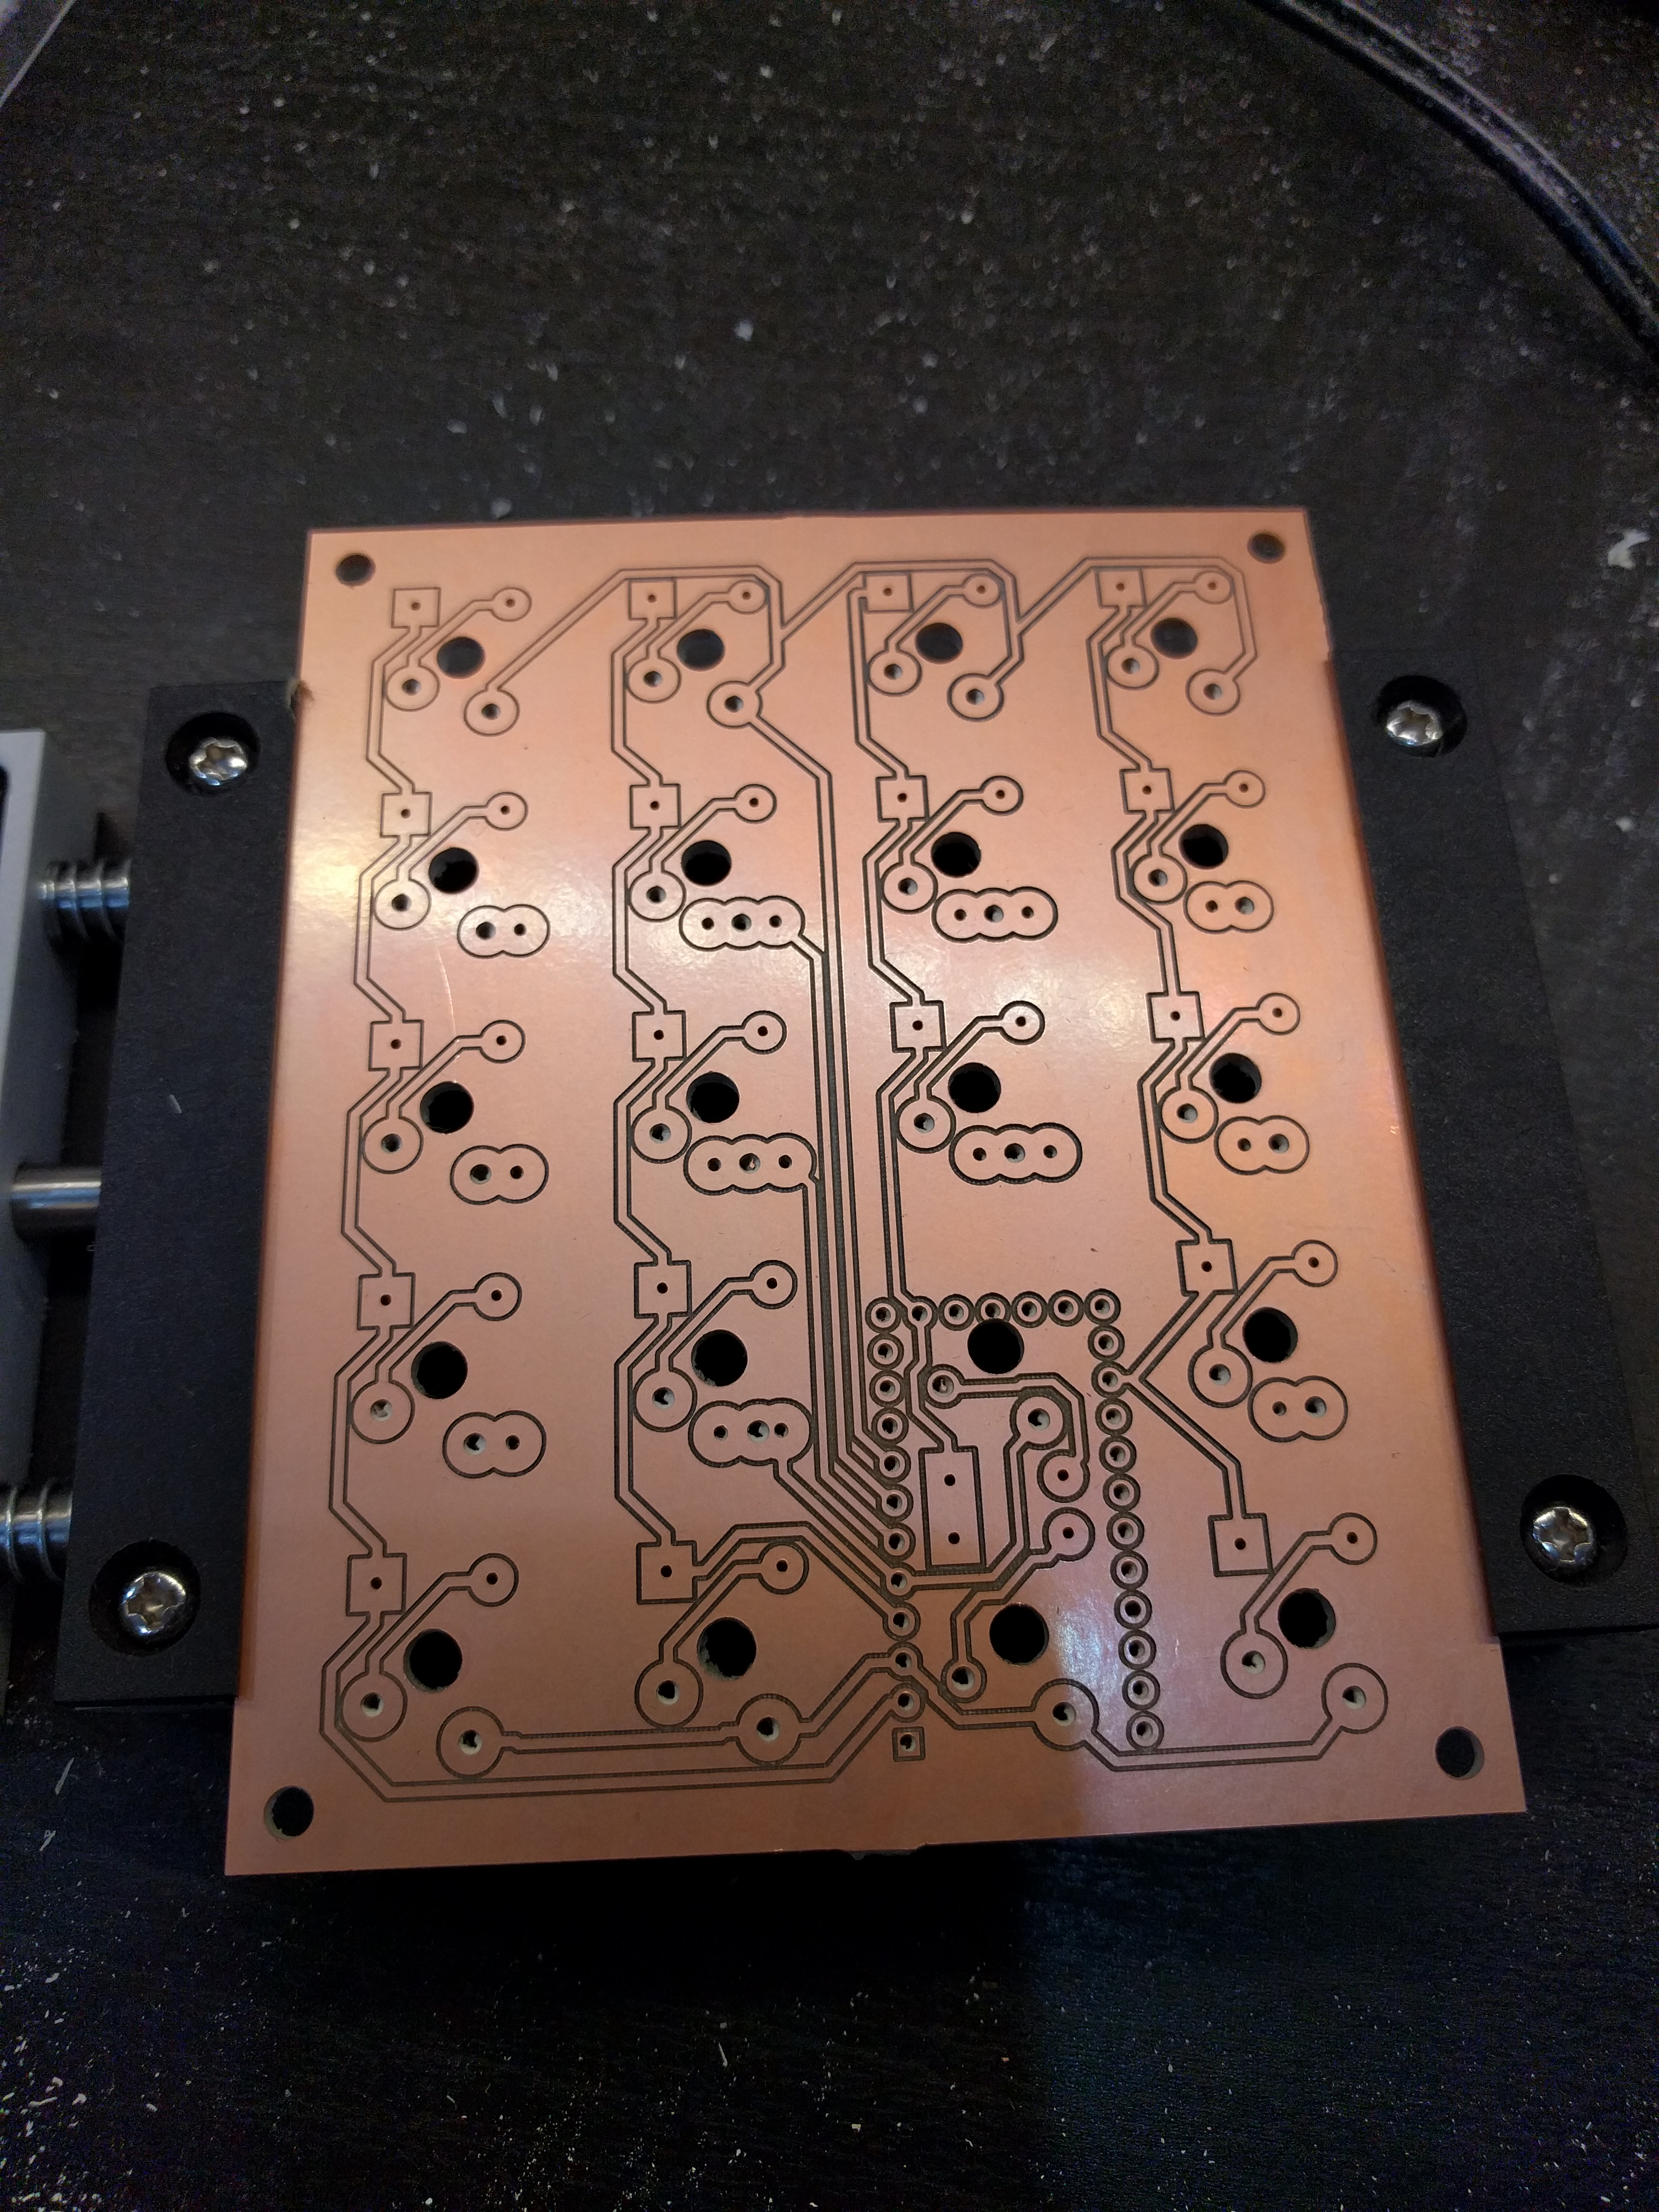 Milled PCB